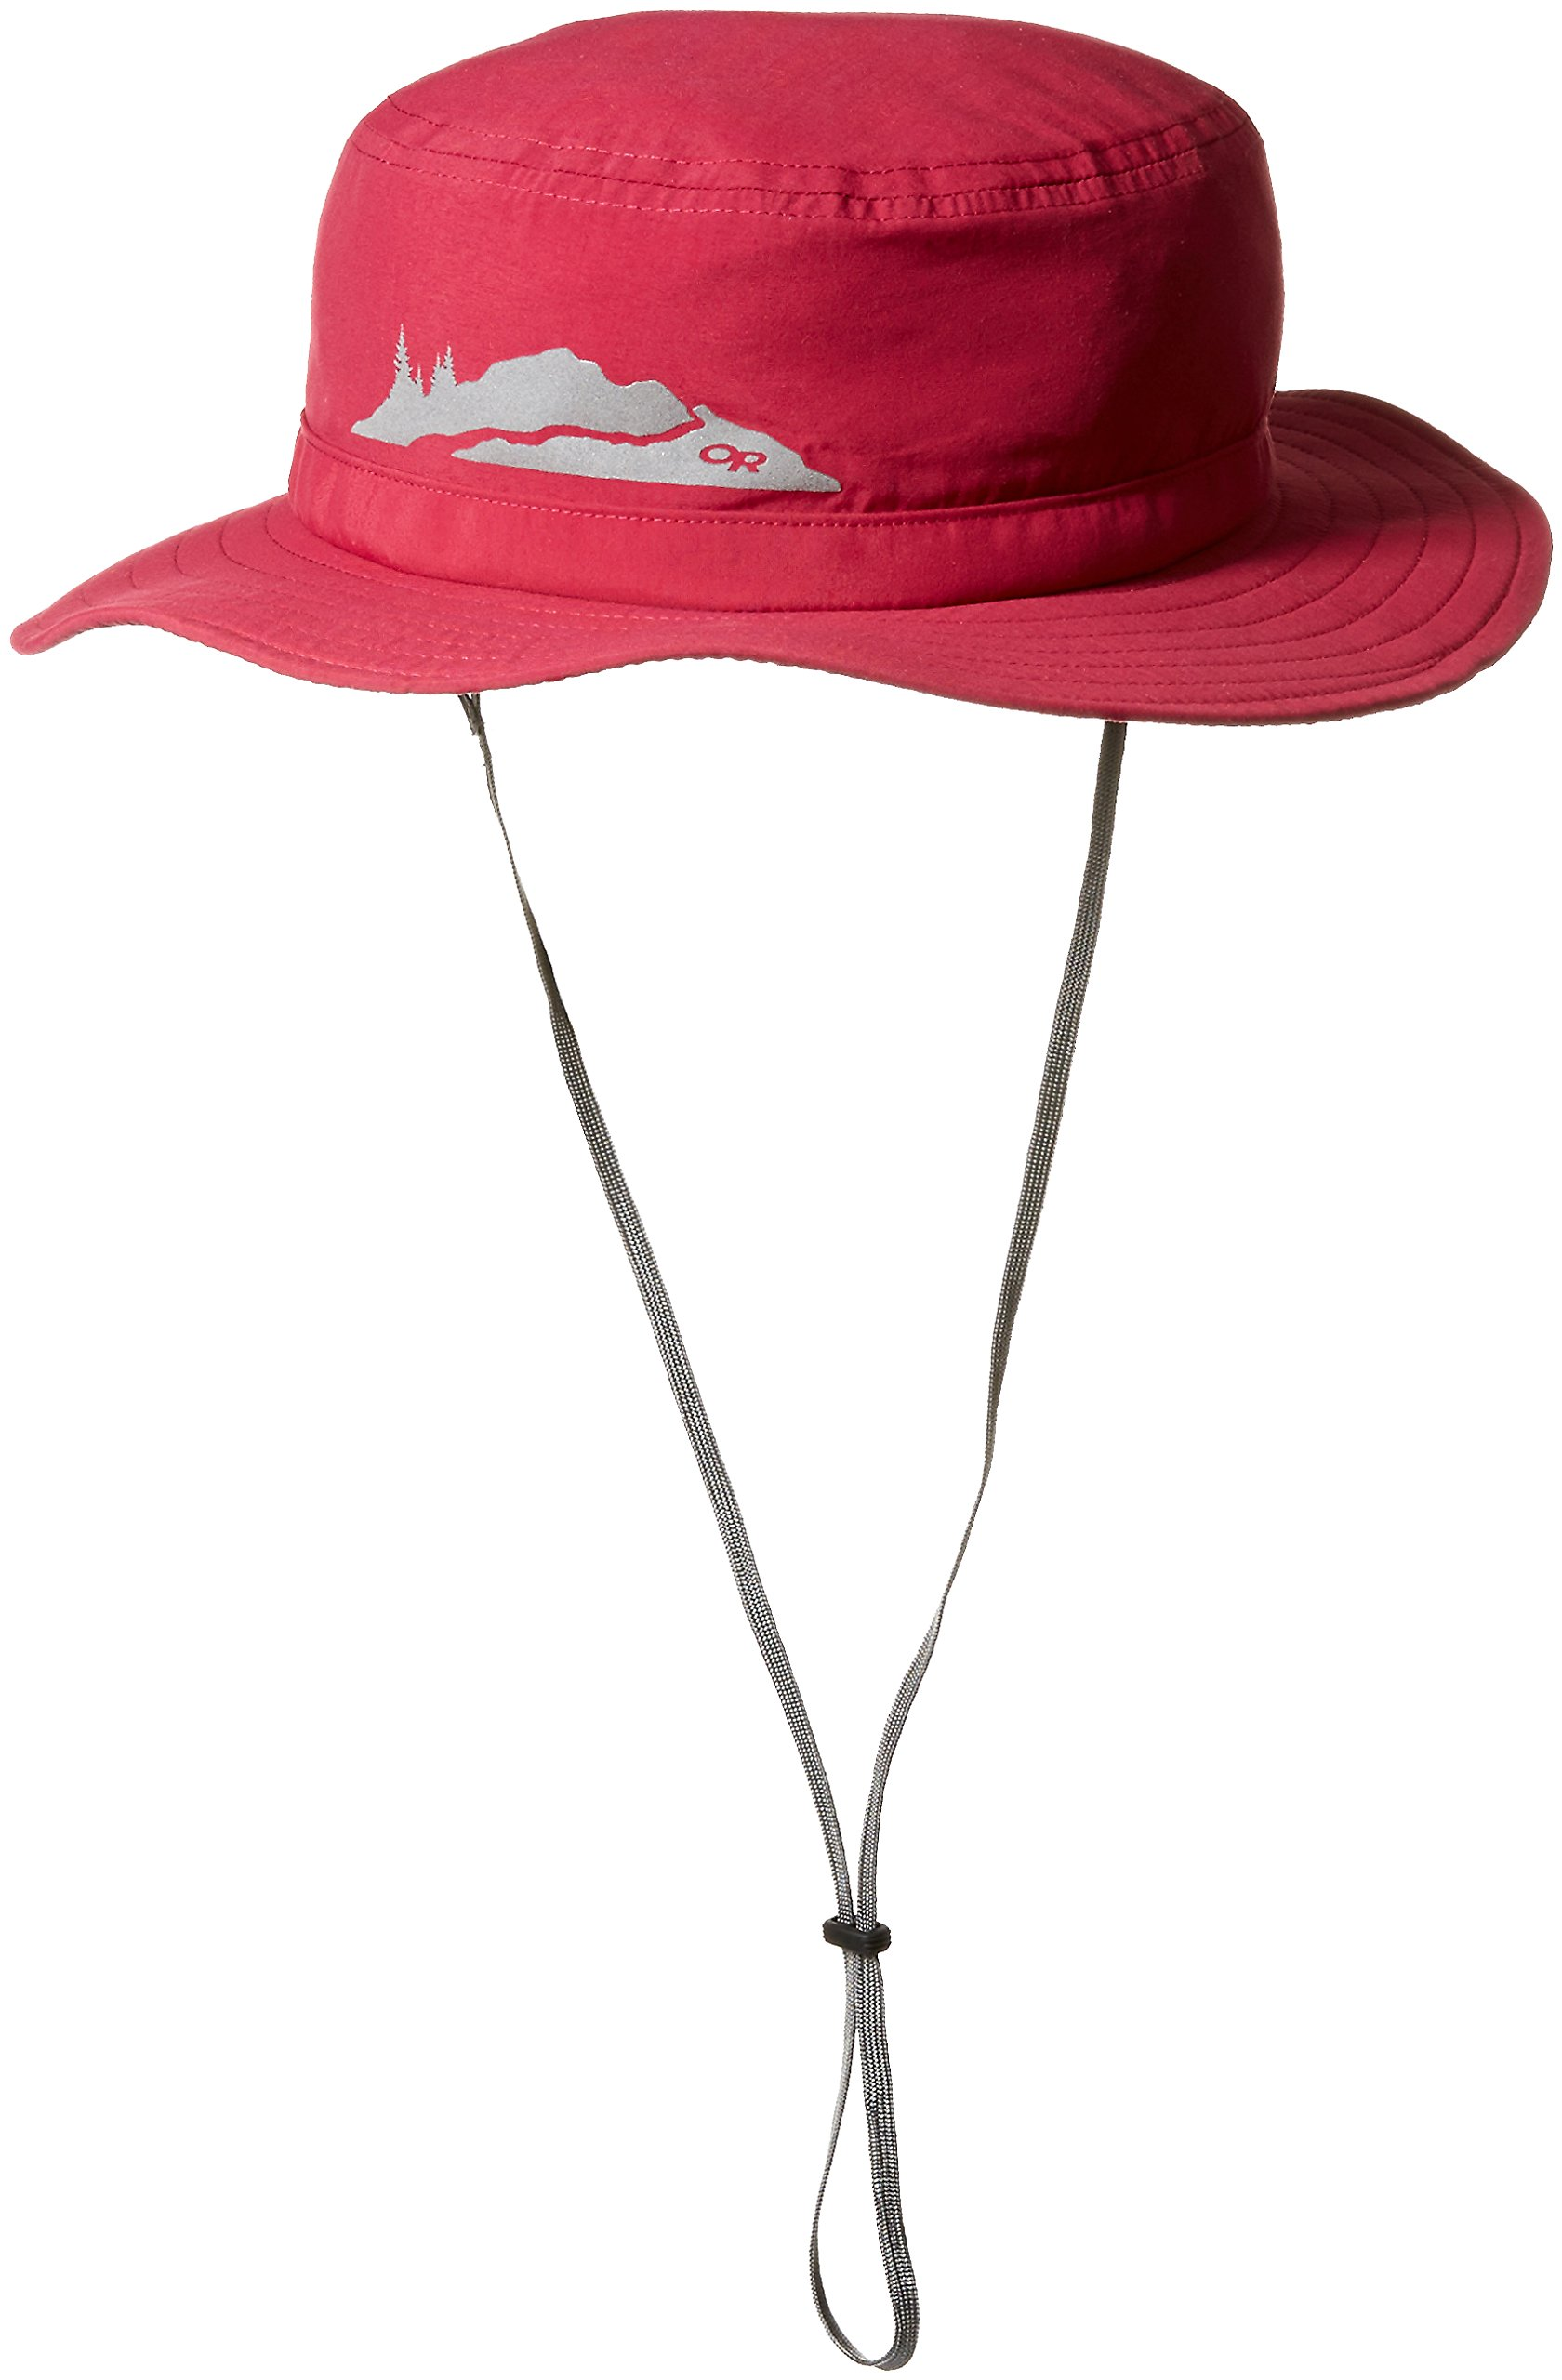 Outdoor Research Kids' Helios Sun Hat, Raspberry, Large